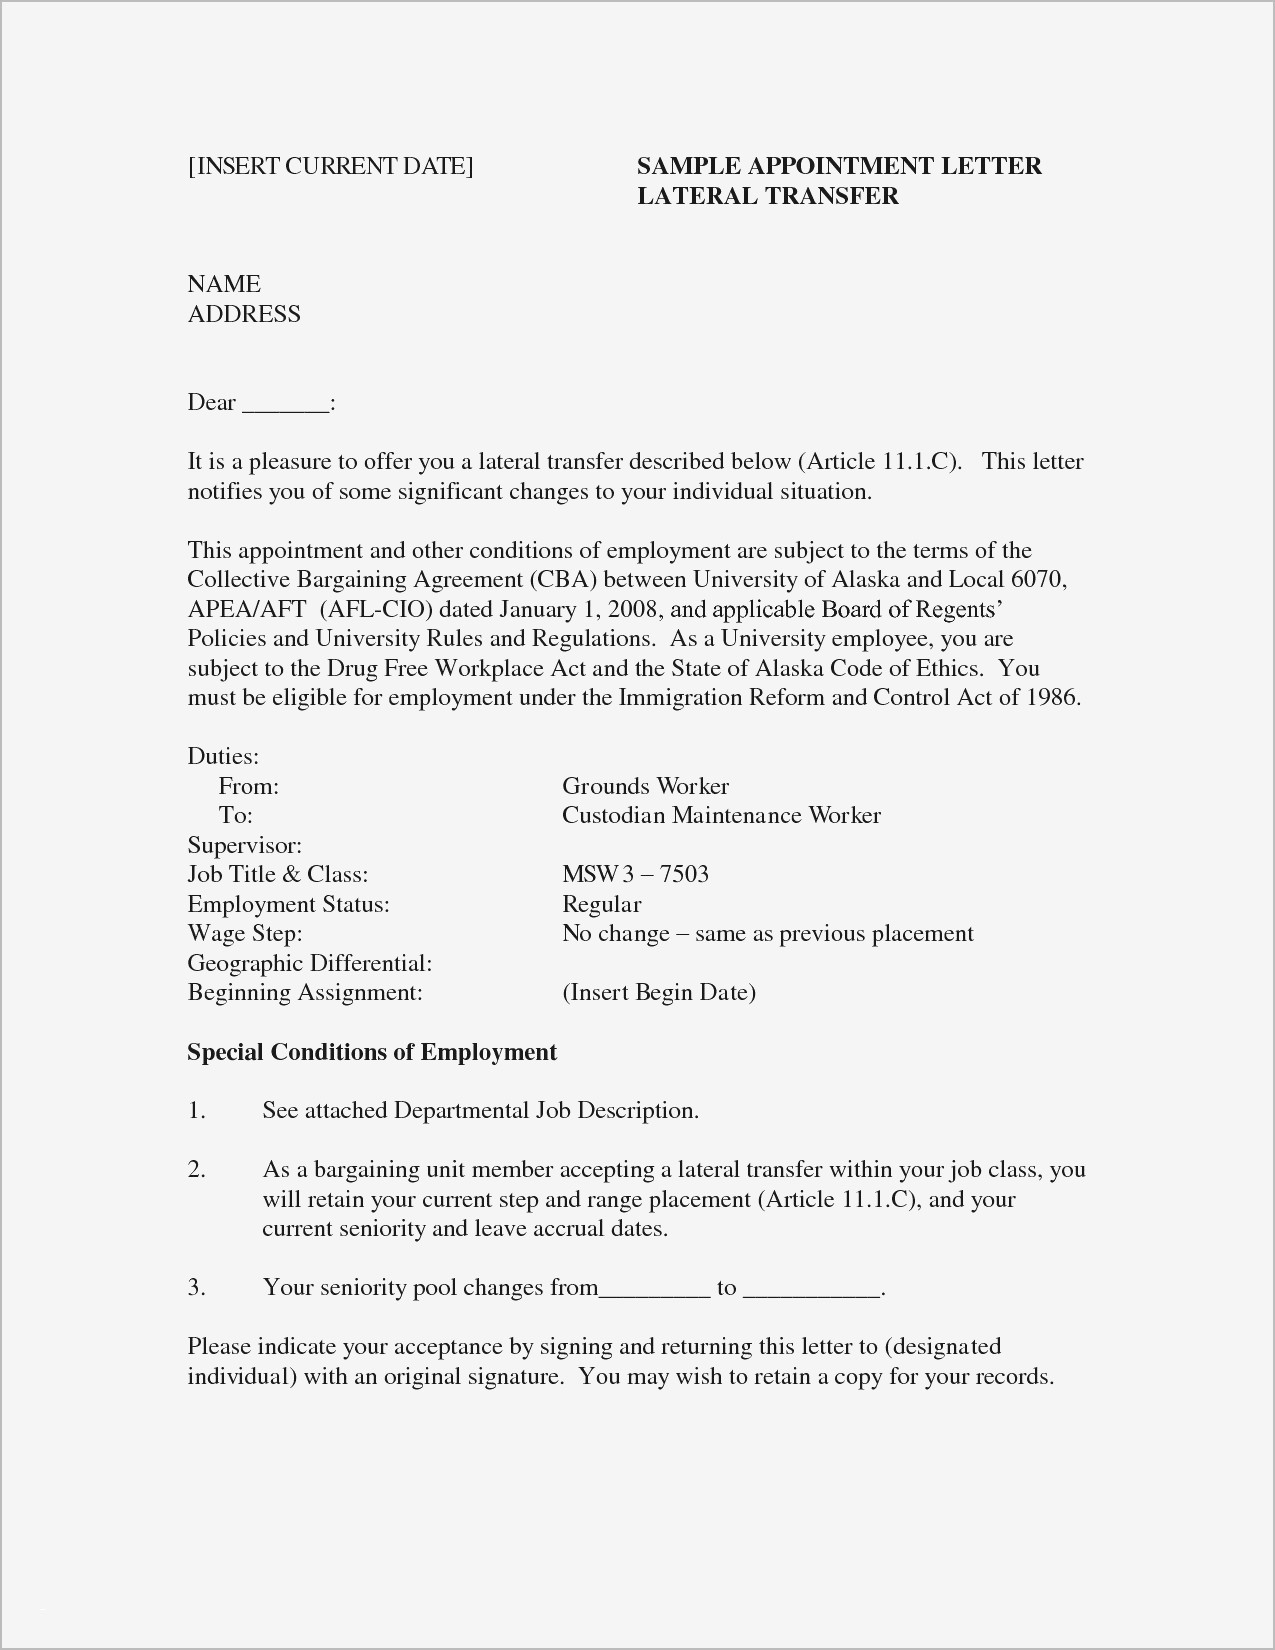 Property Manager Resume Objective - 20 Property Manager Resume Objective